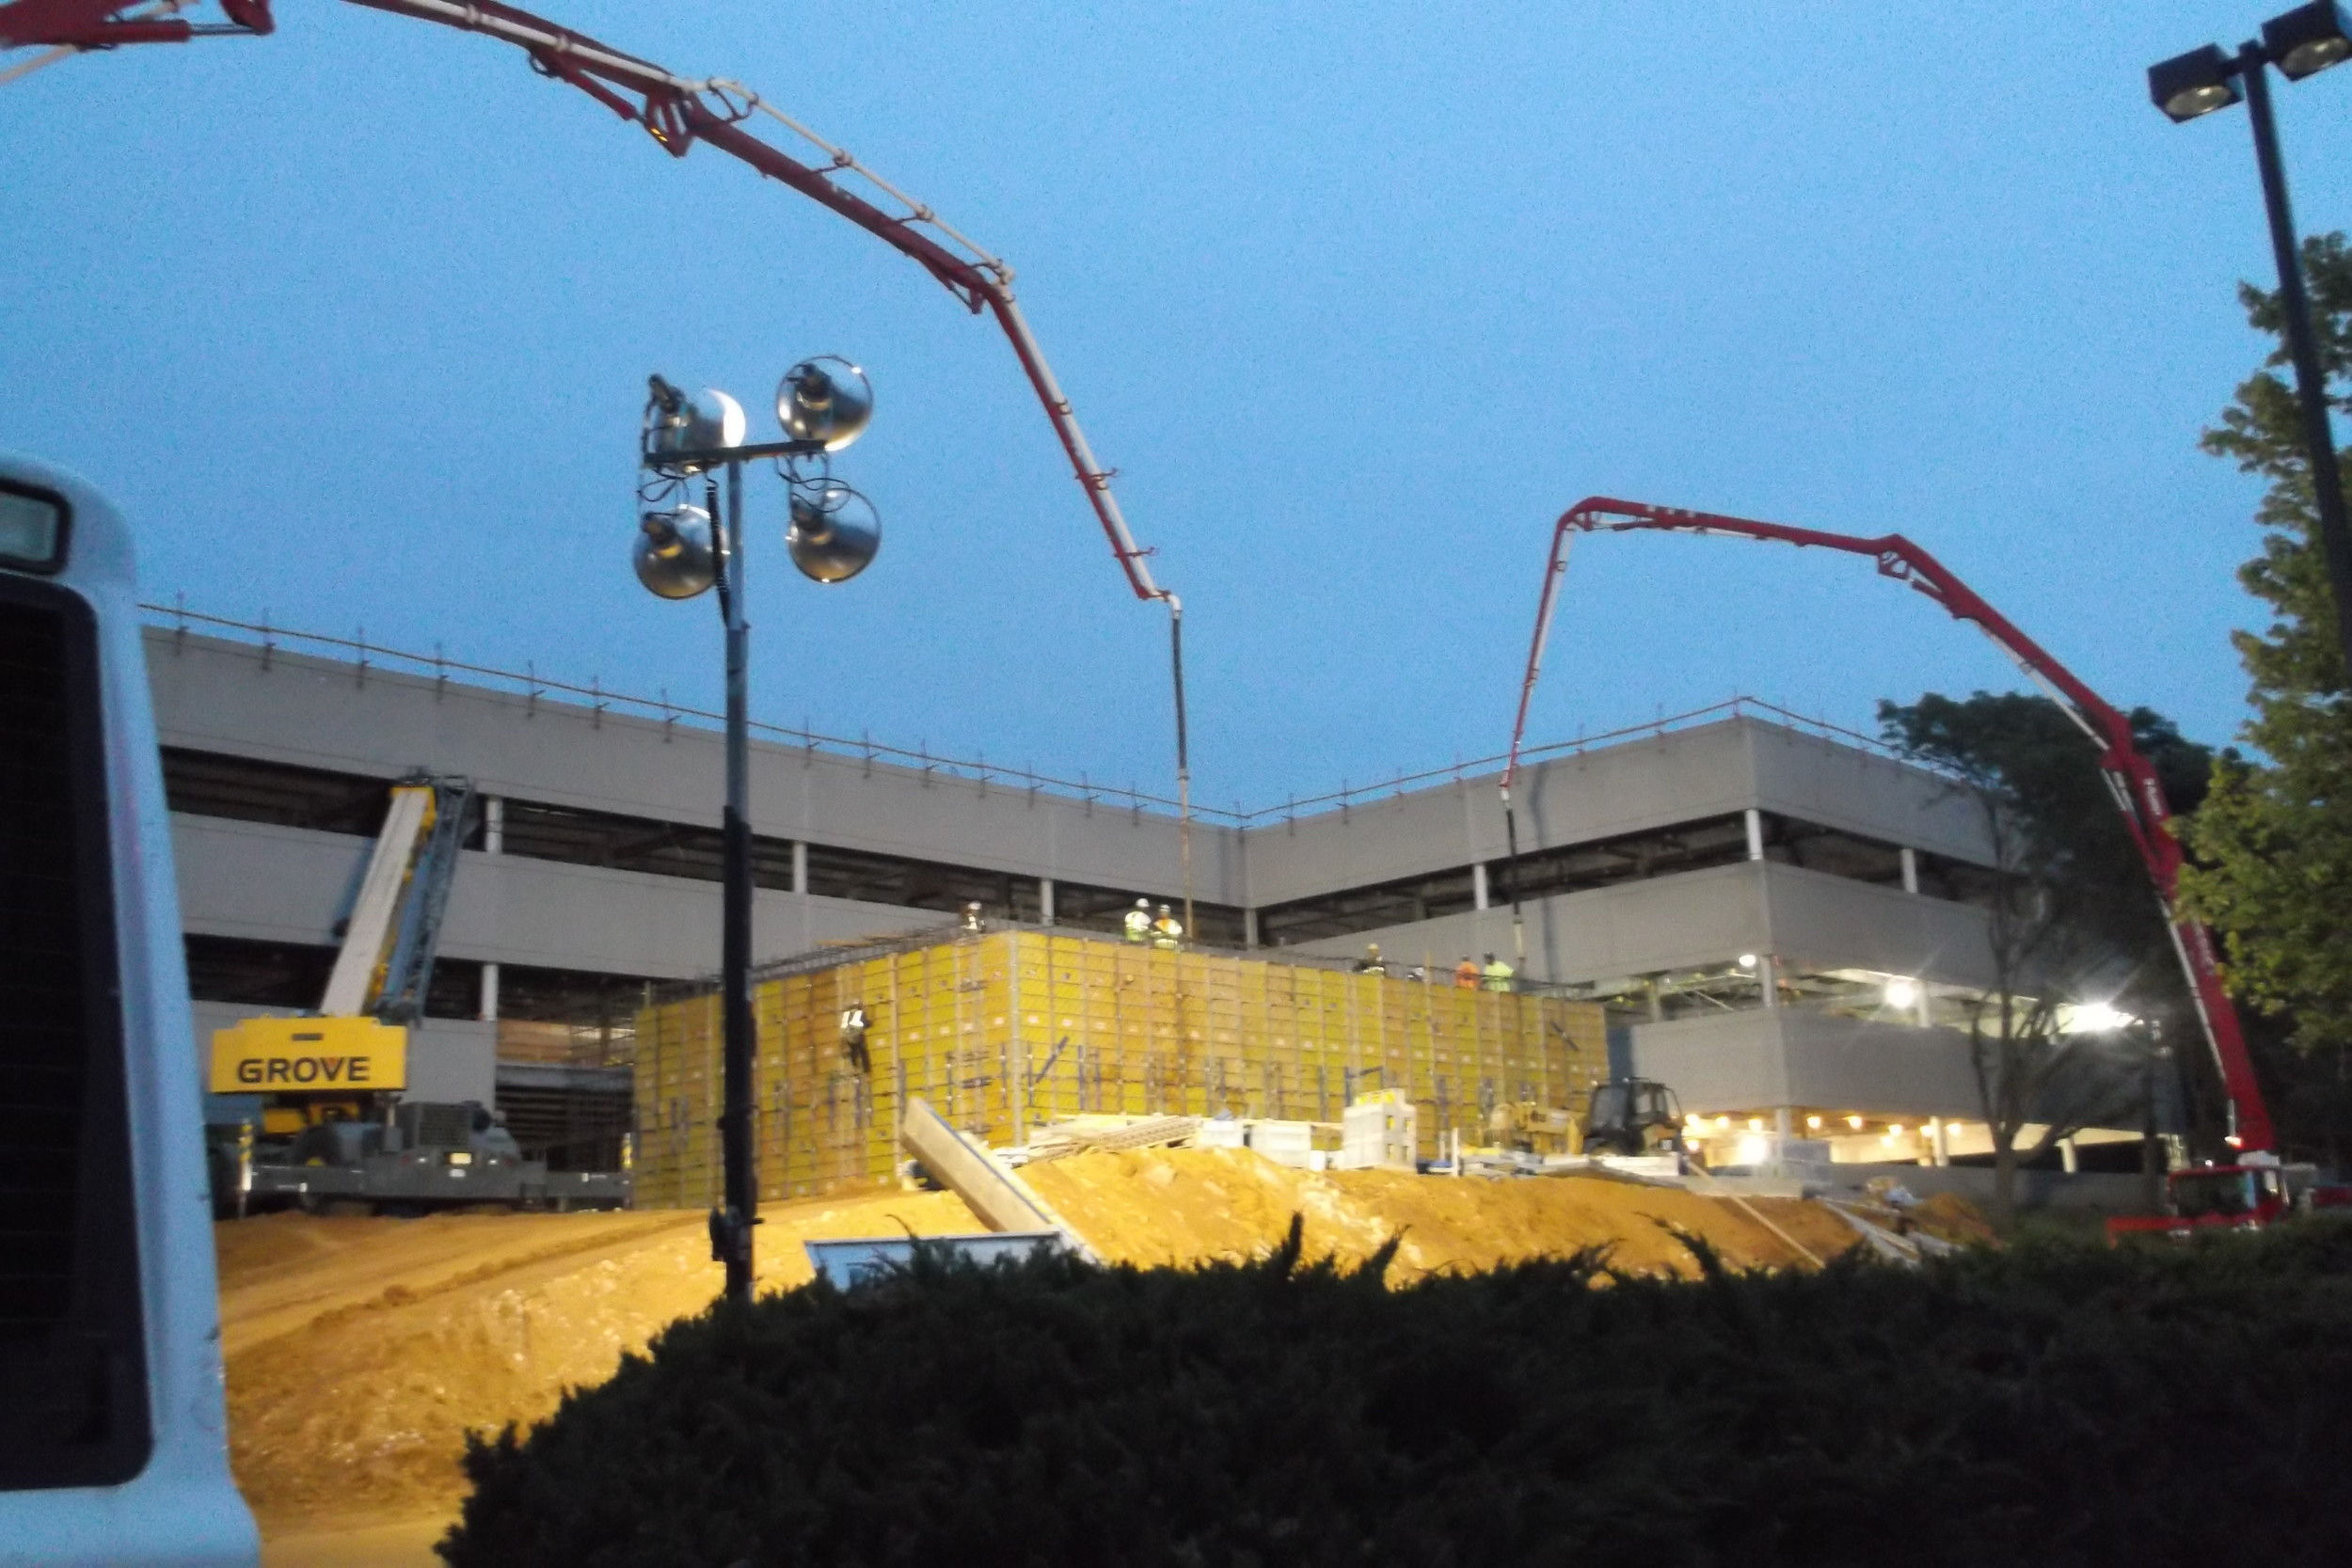 The Linear Accelerator being built at Memorial Sloan Kettering Hospital - Middletown, NJ